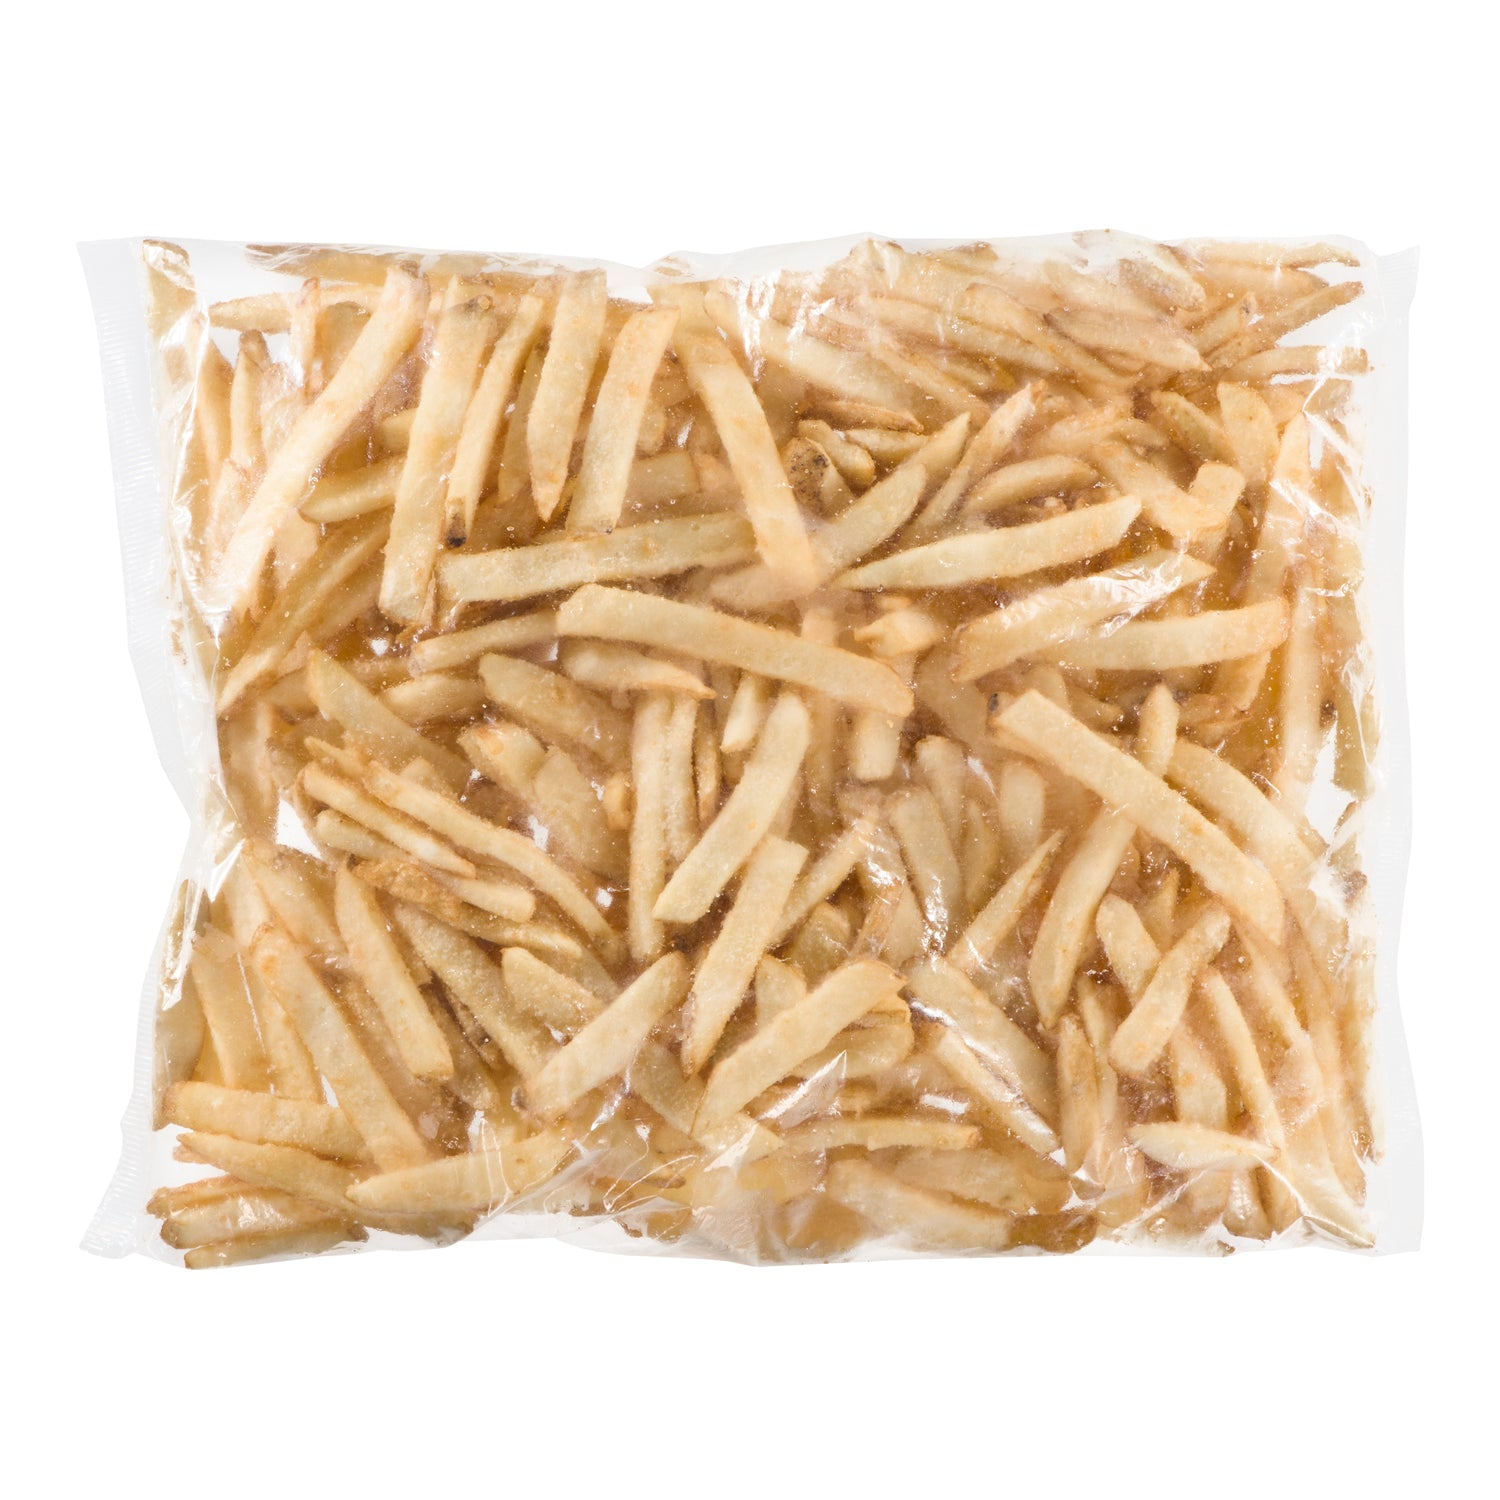 Sysco Imperial Frozen Beer Battered French Fries 5 lb - 6 Pack [$2.40/lb]